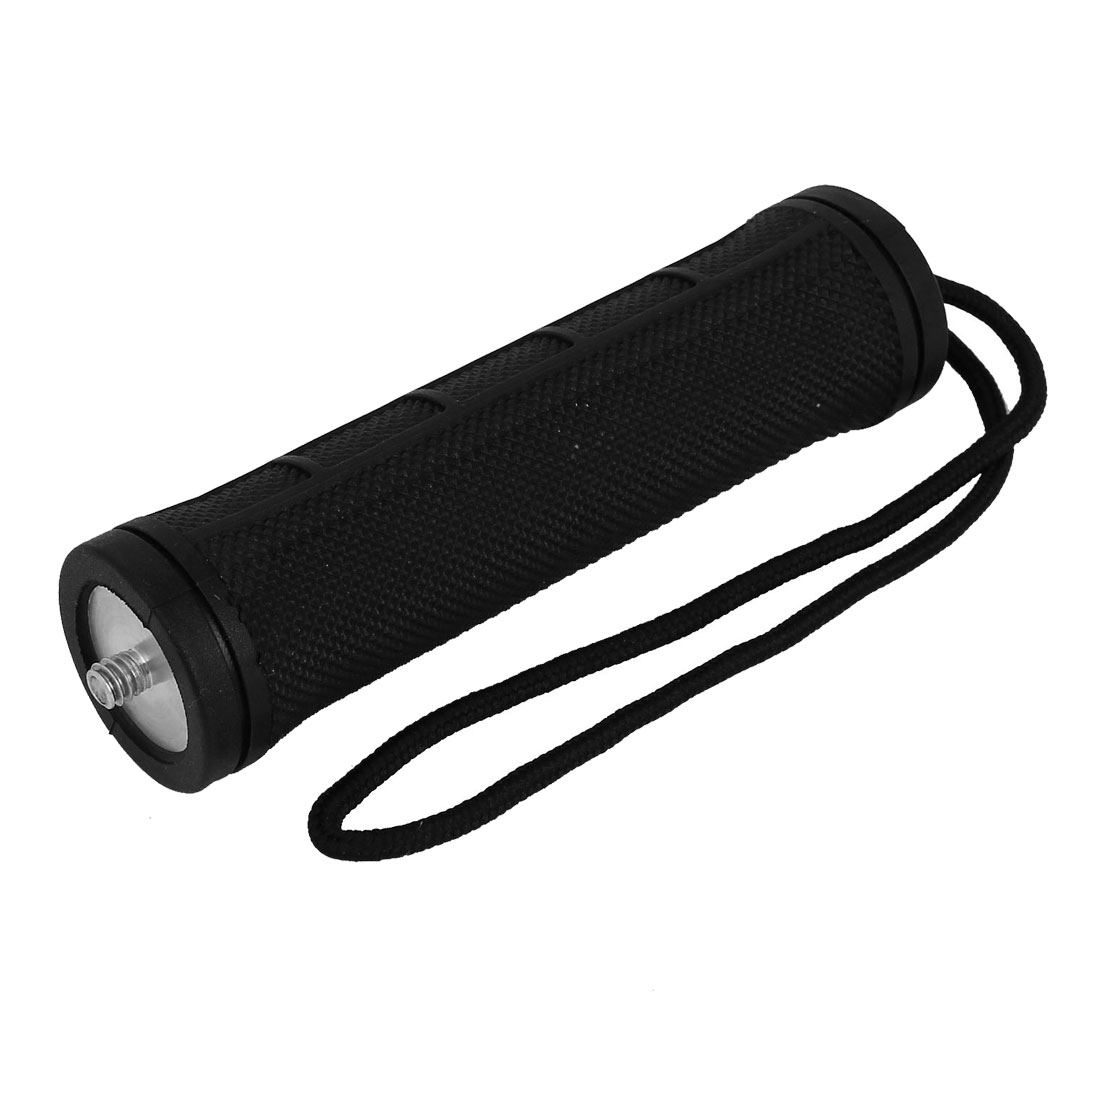 Flashlight Handle Hand Grip Black w Strap for Compact Camera Camcorder